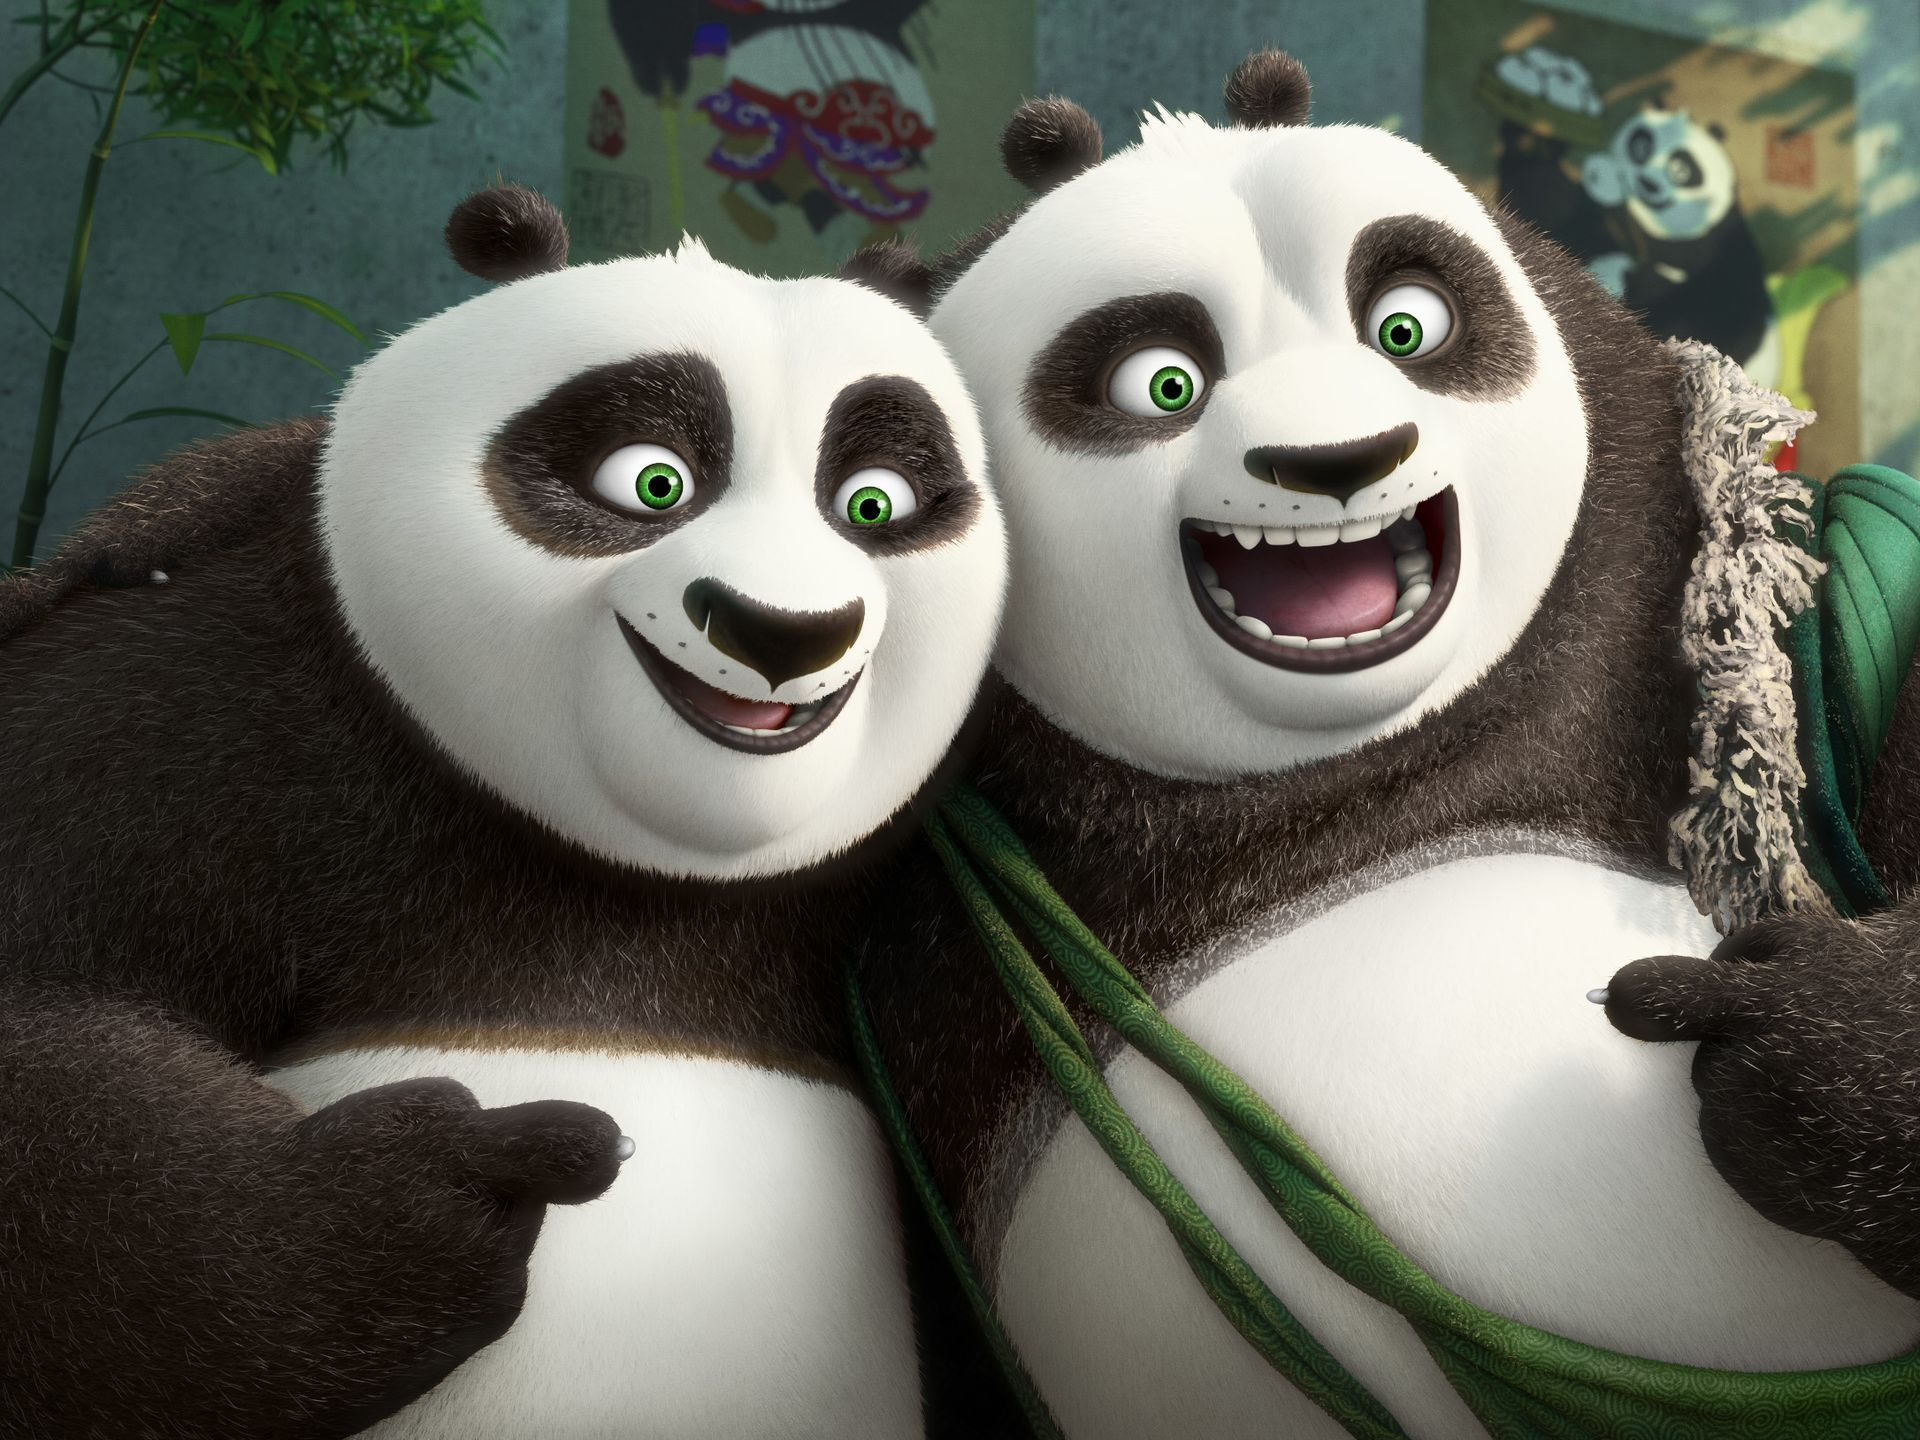 Kung fu panda iphone wallpaper - Kung Fu Panda Images Reveal Pos Family Reunion Collider 1920 815 Kung Fu Panda 3 Wallpapers 39 Wallpapers Adorable Wallpapers Desktop Pinterest